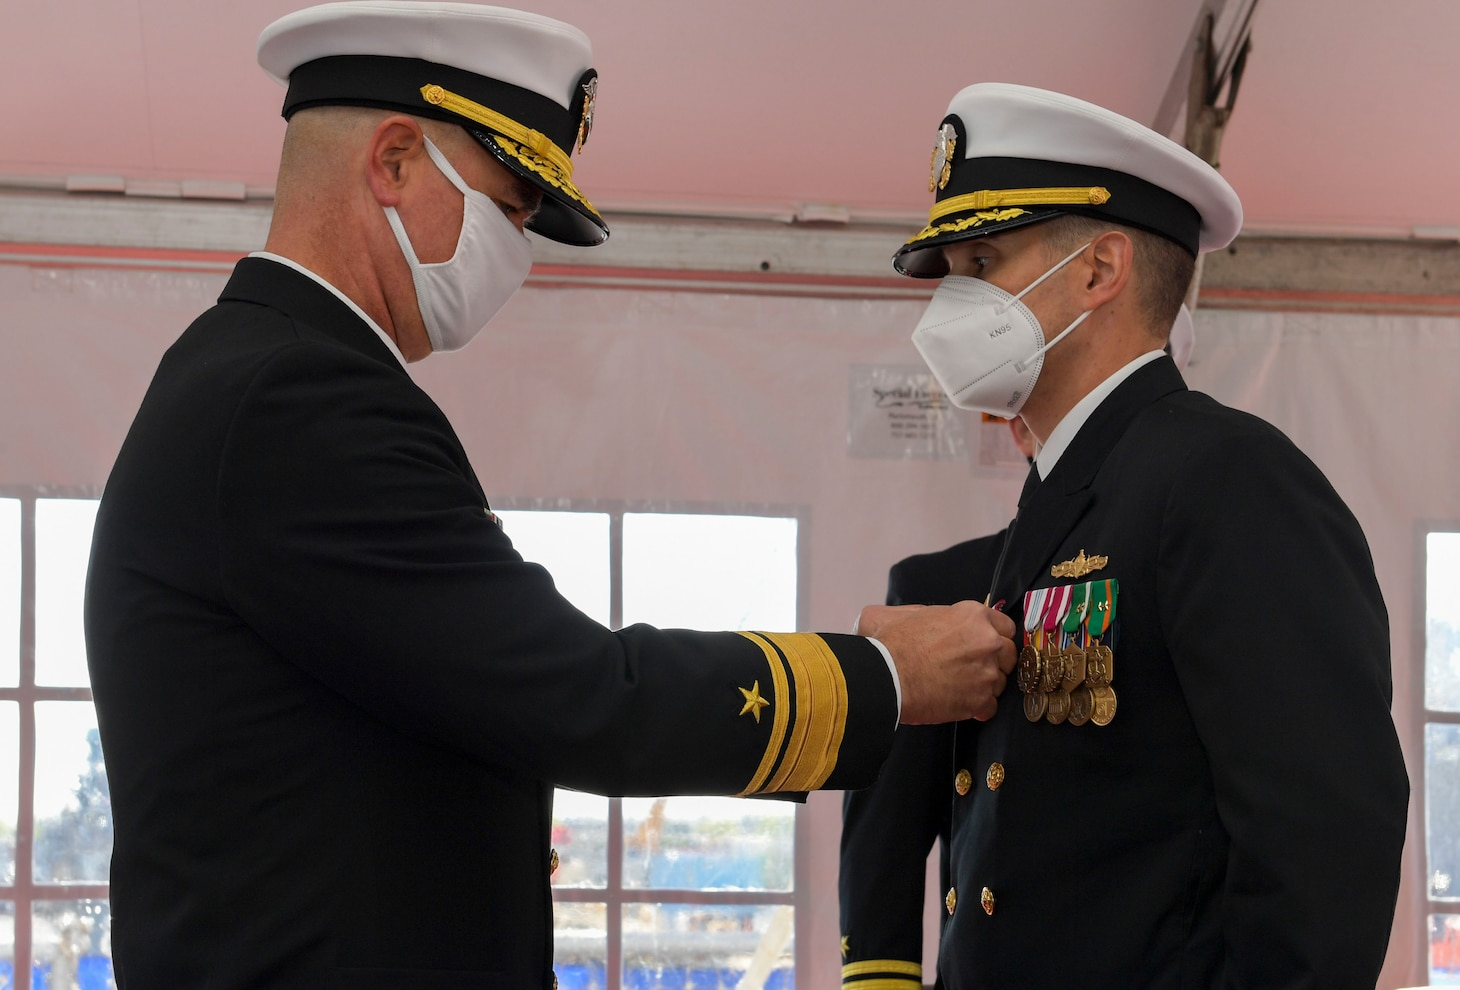 NAVAL STATION NORFOLK – Rear Adm. Brendan McLane, commander, Surface Force Atlantic, awards Cmdr. Matthew Erdner with the Meritorious Service medal during a change of command ceremony on board the Arleigh Burke-class destroyer USS Mason (DDG 87). During the ceremony, Cmdr. Stephen Valerio relieved Erdner of command following at 18-month tour as commanding officer. (U.S. Navy photo by Mass Communication Specialist 2nd Class Jacob Milham/Released)